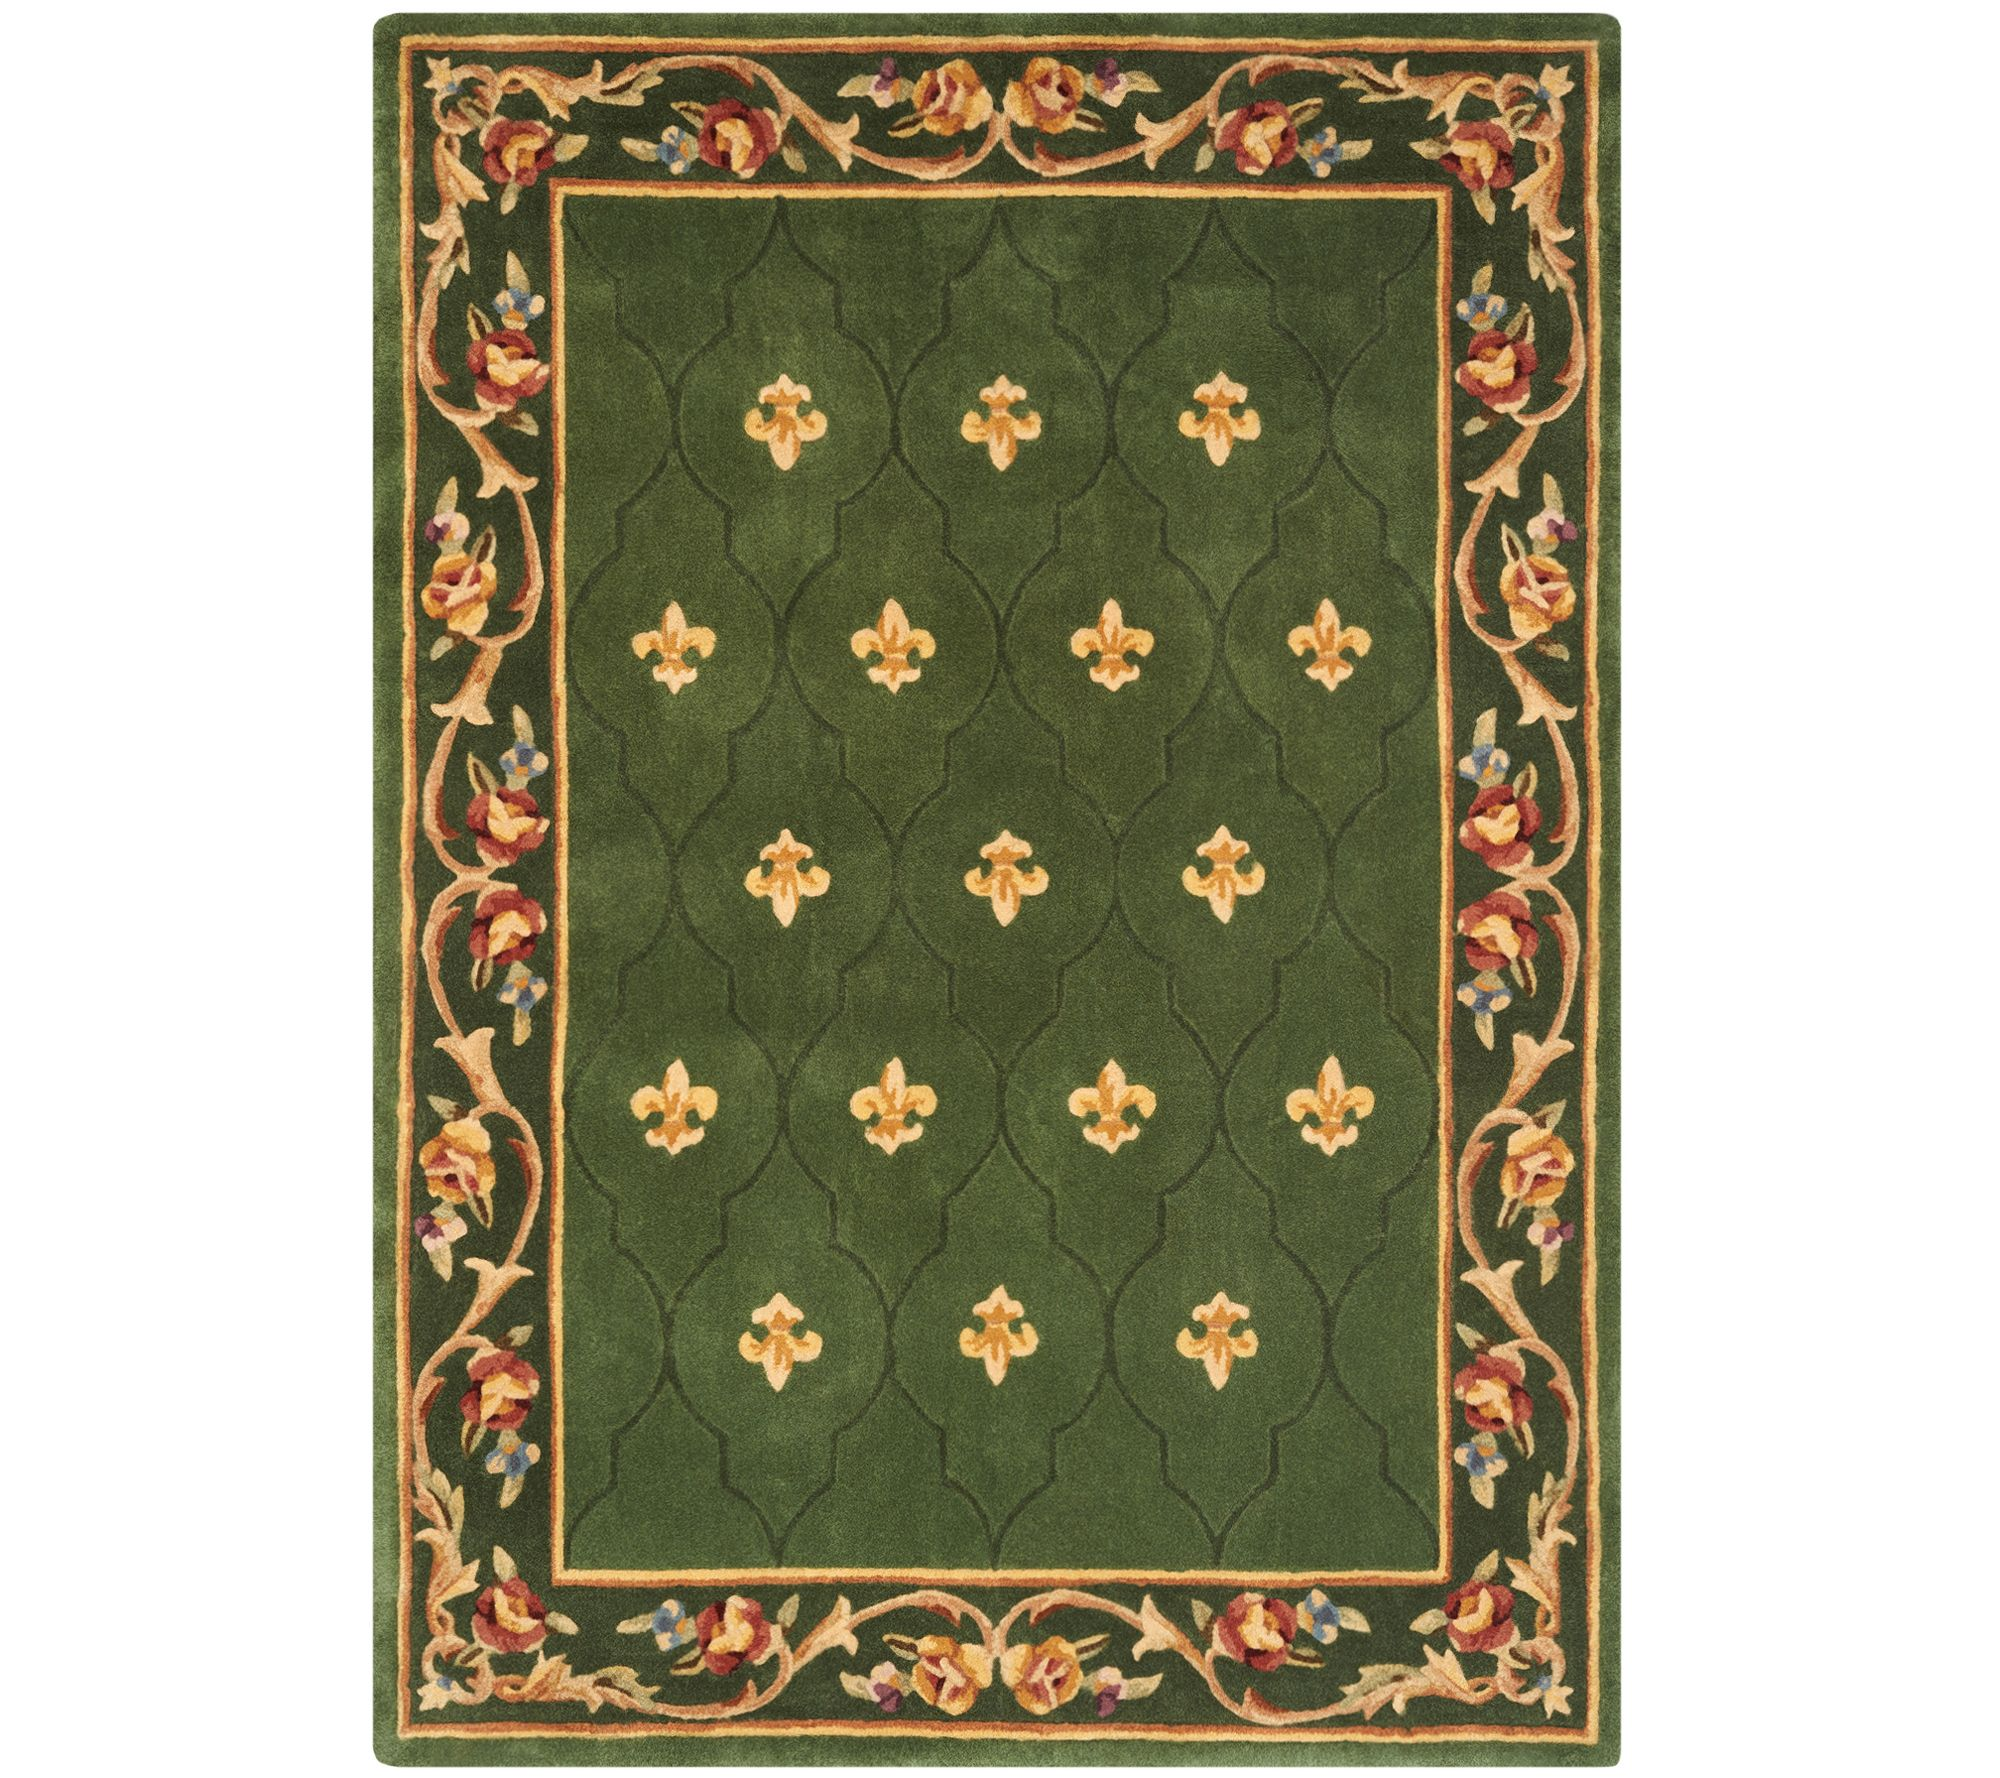 Wonderful 10 Foot Square Rug Part - 12: Royal Palace Special Edition 5u0027x7u0027 Fleur De Lis Wool Rug - H207293